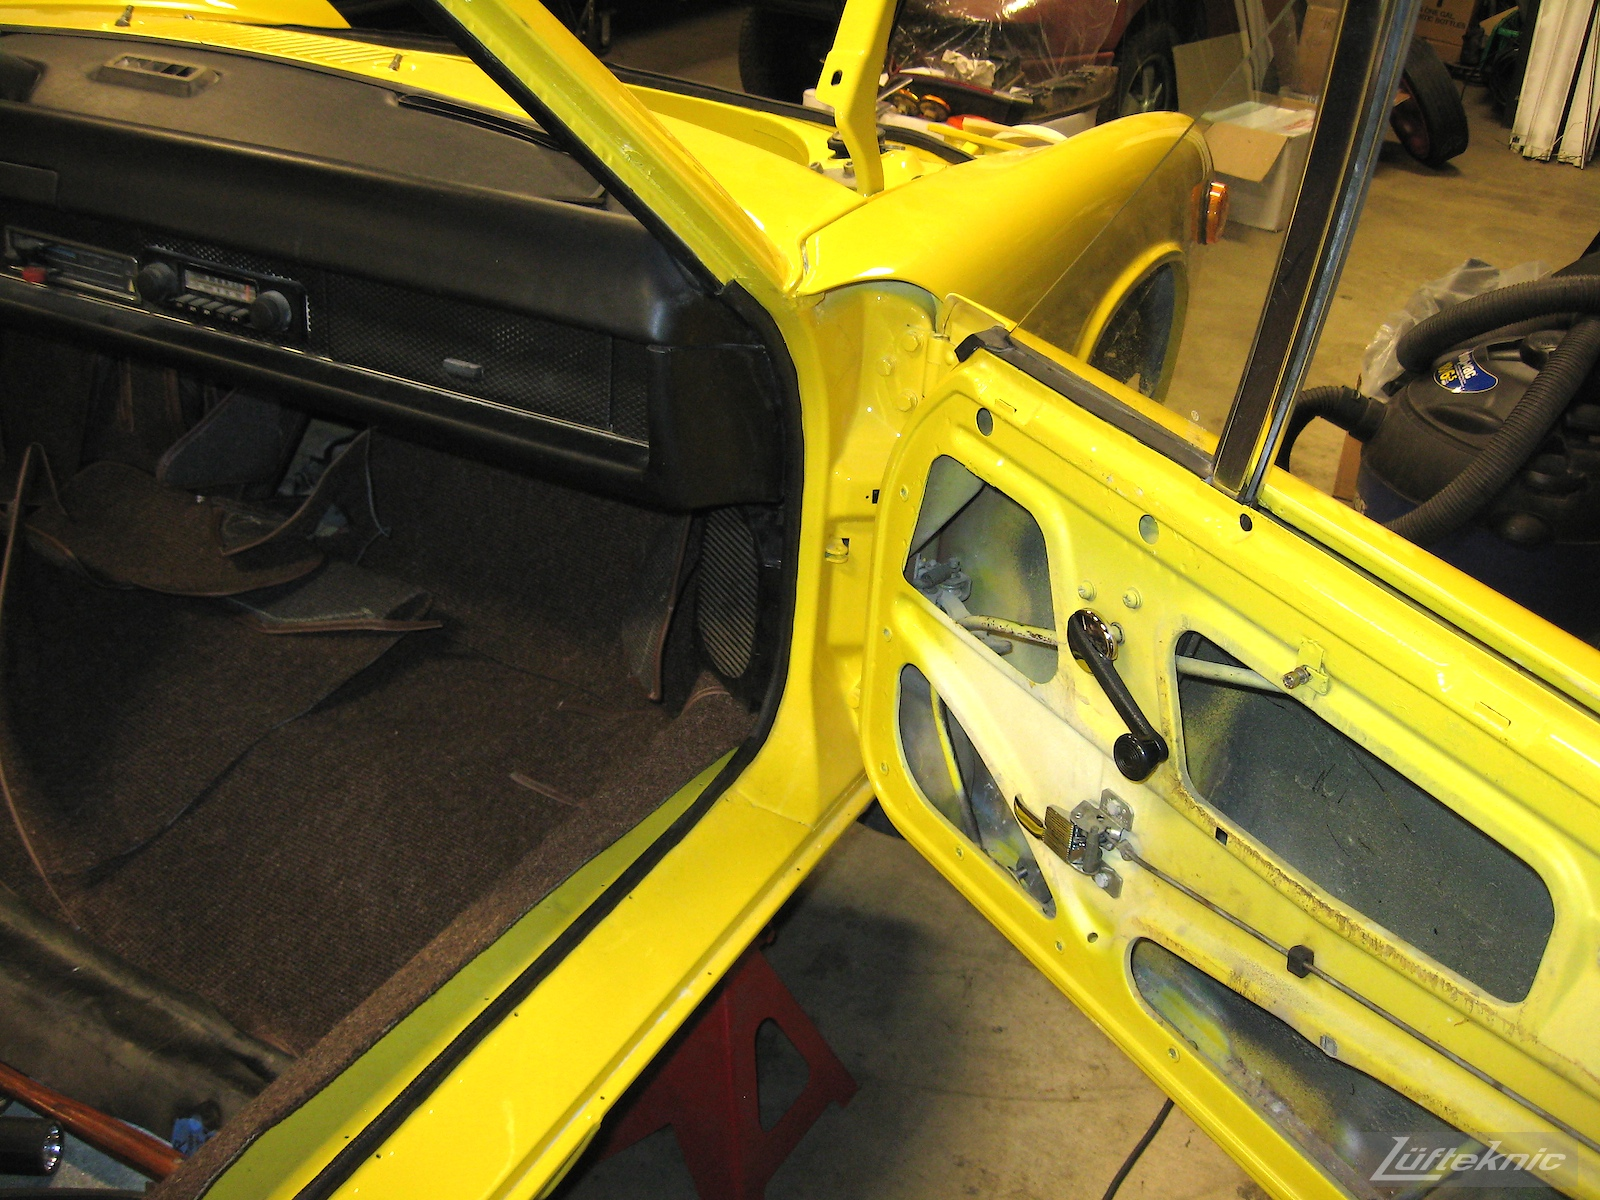 Door trim detail on a Porsche 914 being restored.